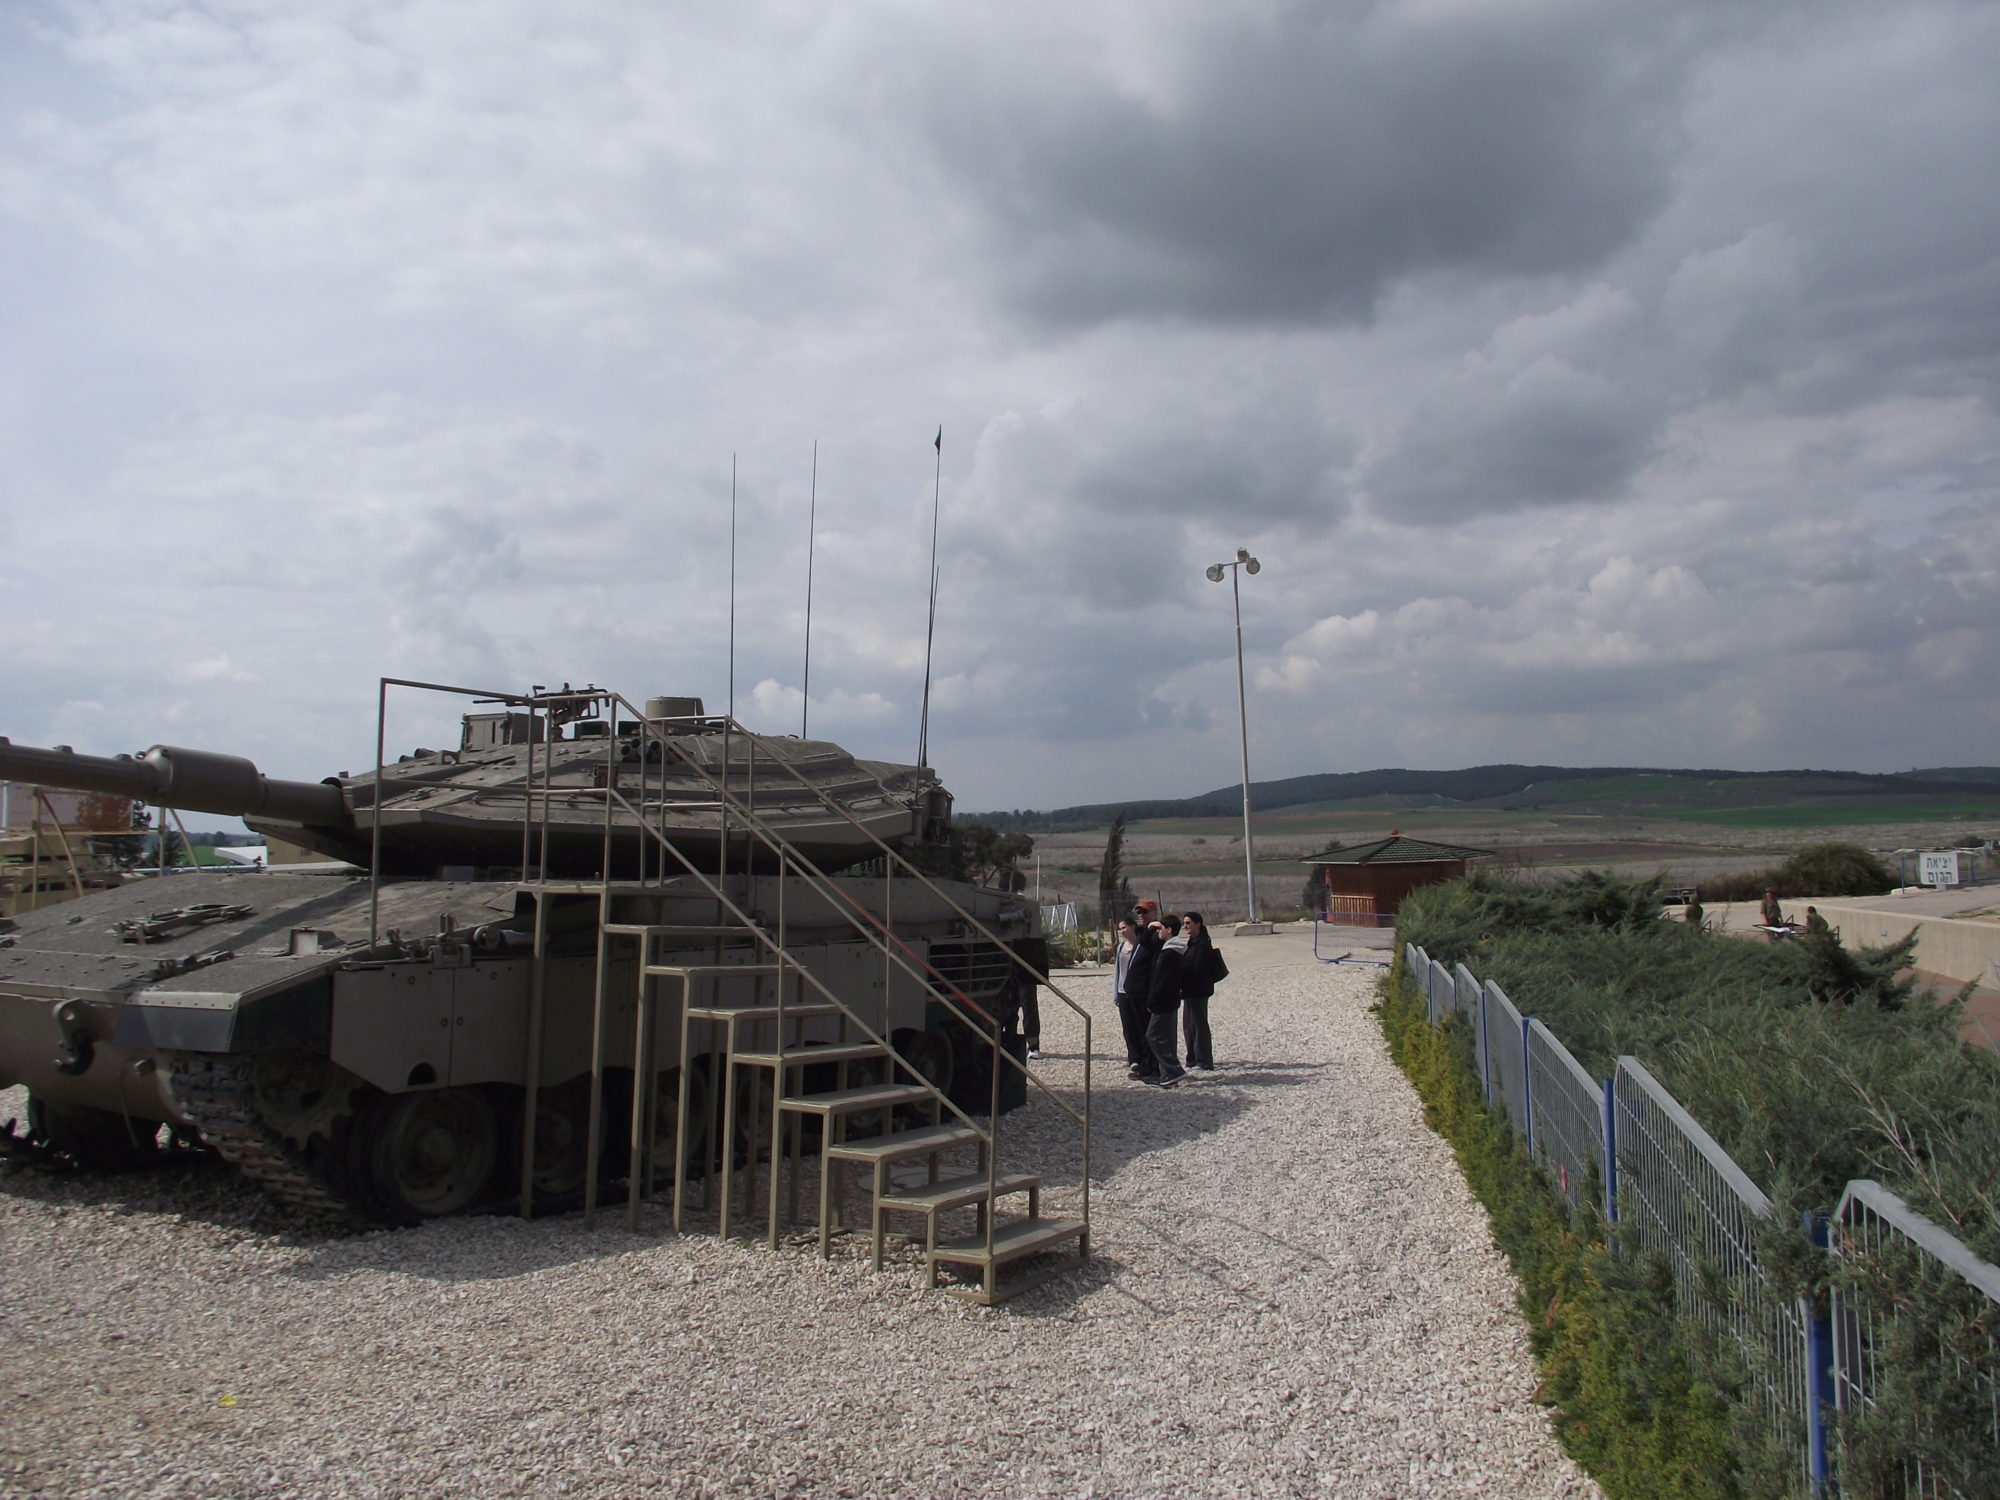 IDF Armored Corps Museum in Latrun